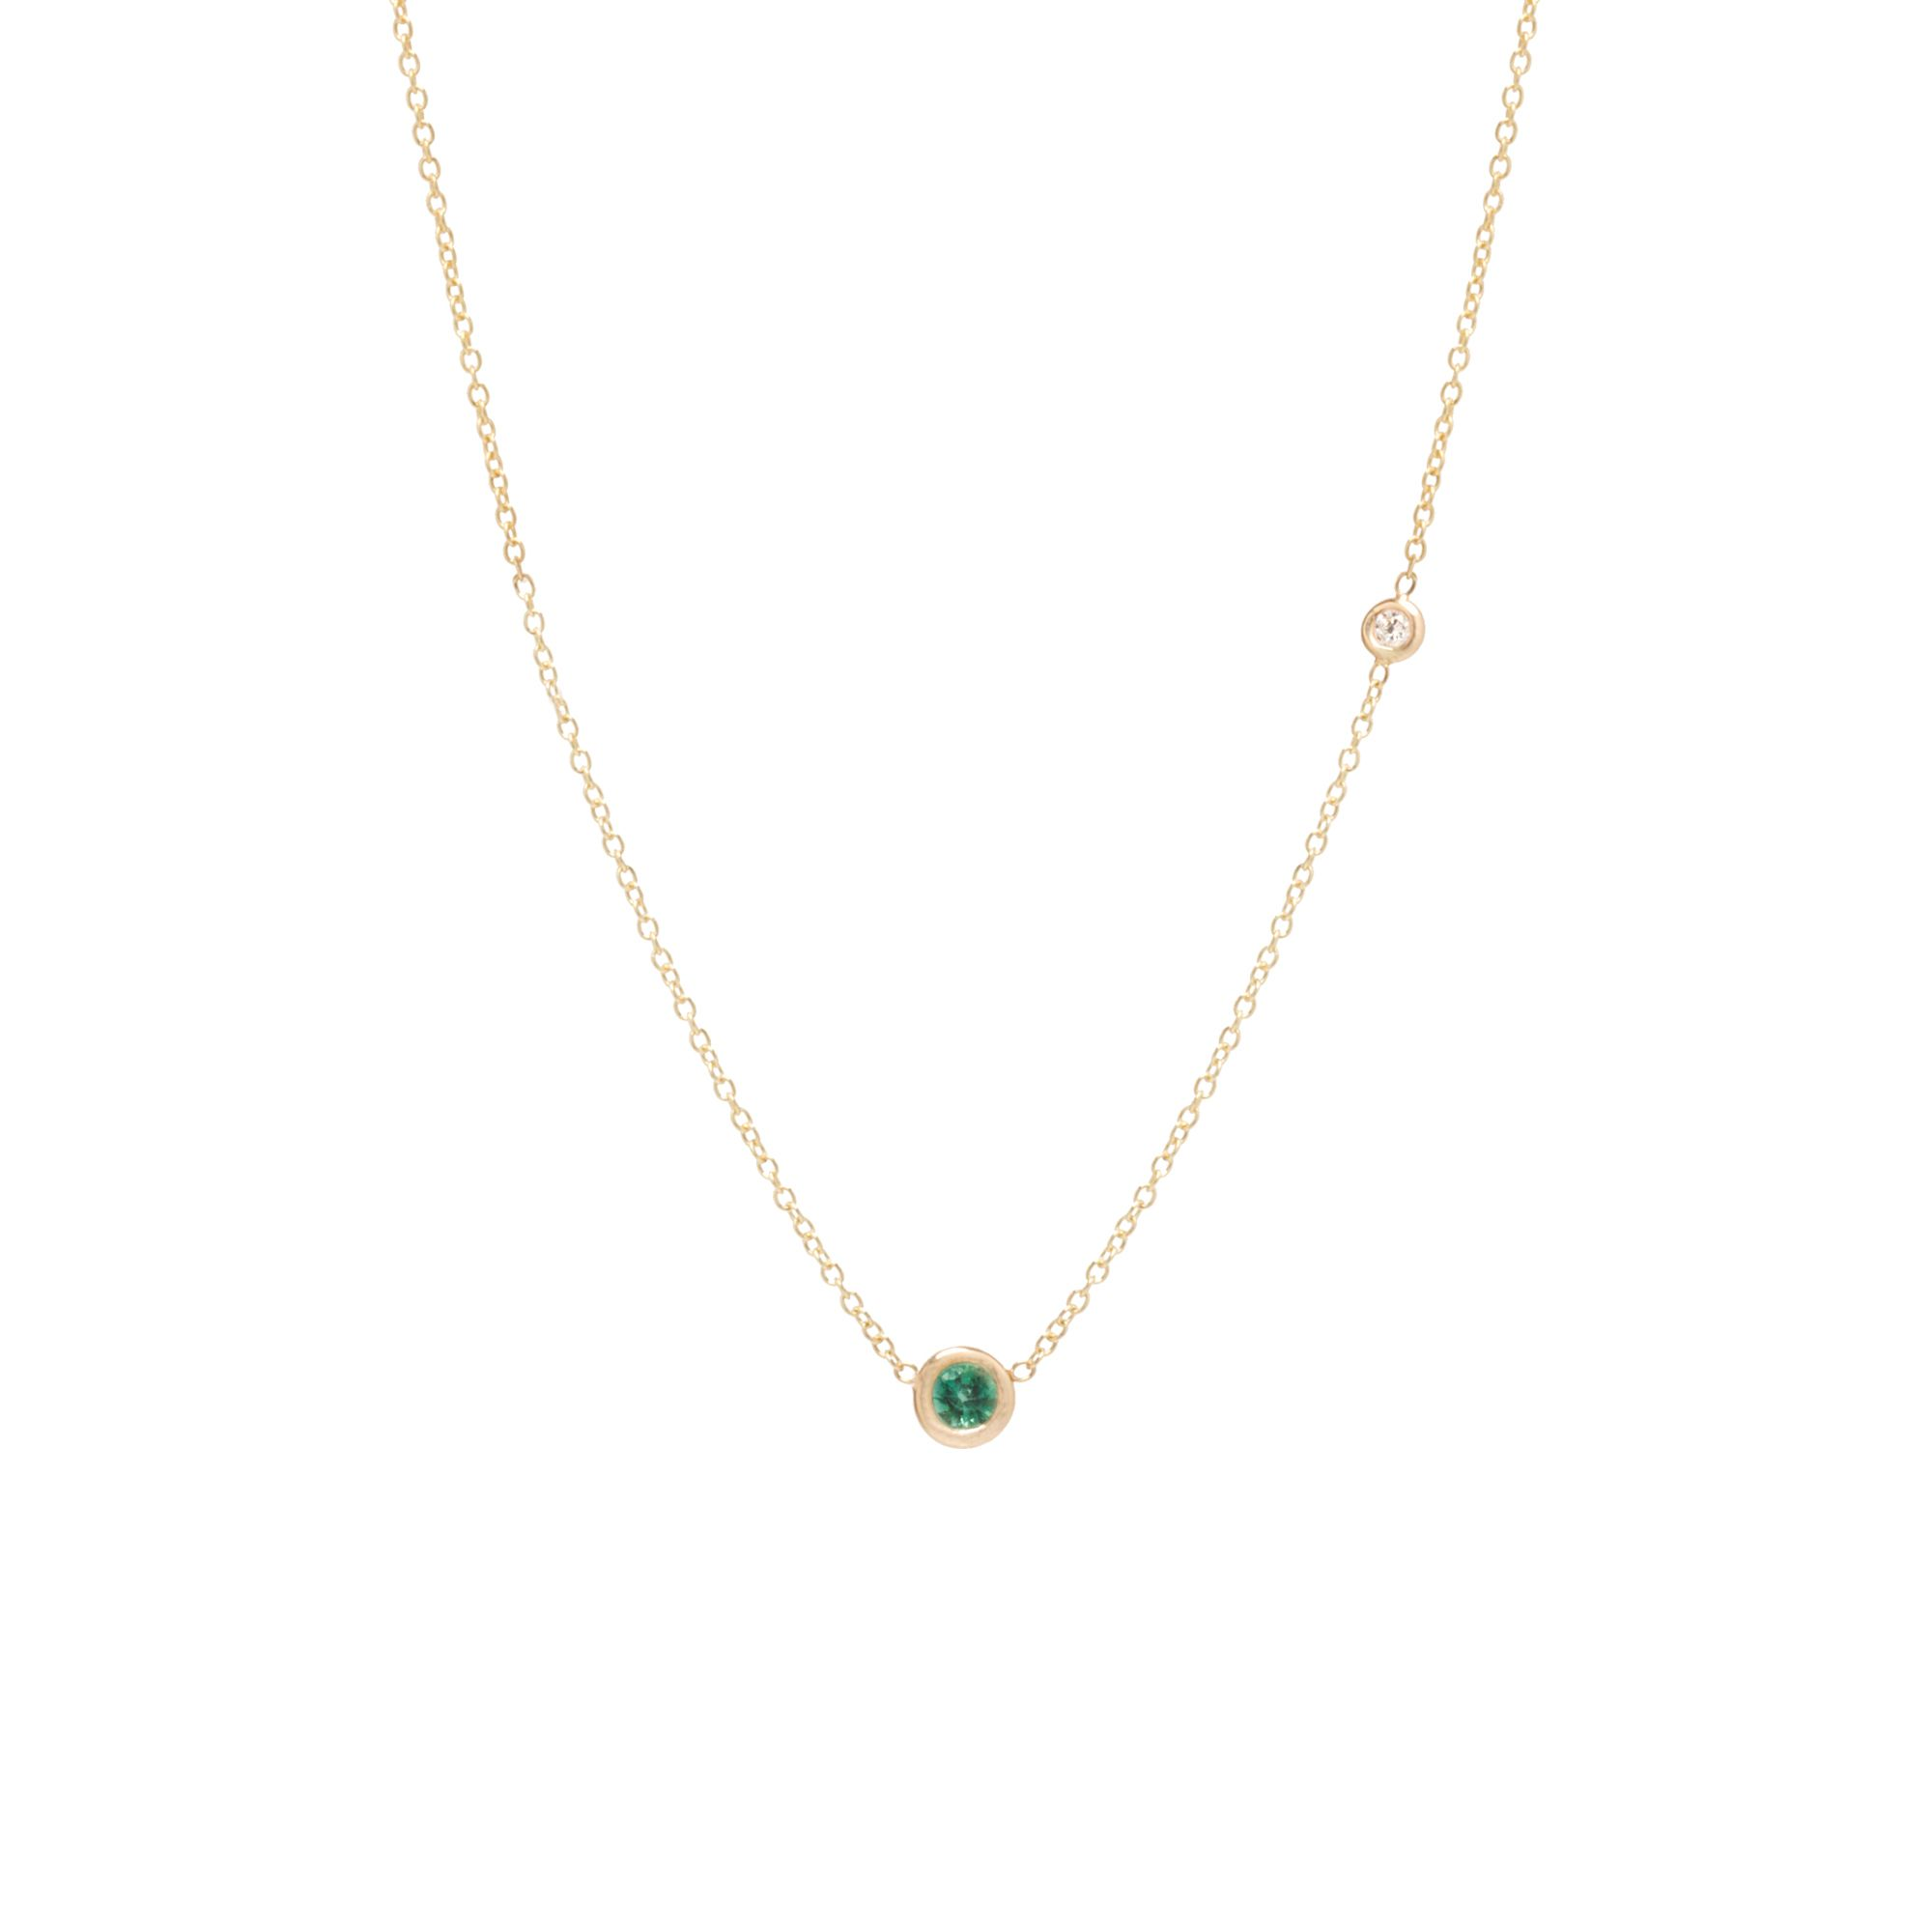 Zoe Chicco 14k Yellow Gold Emerald And Offset Diamond Necklace